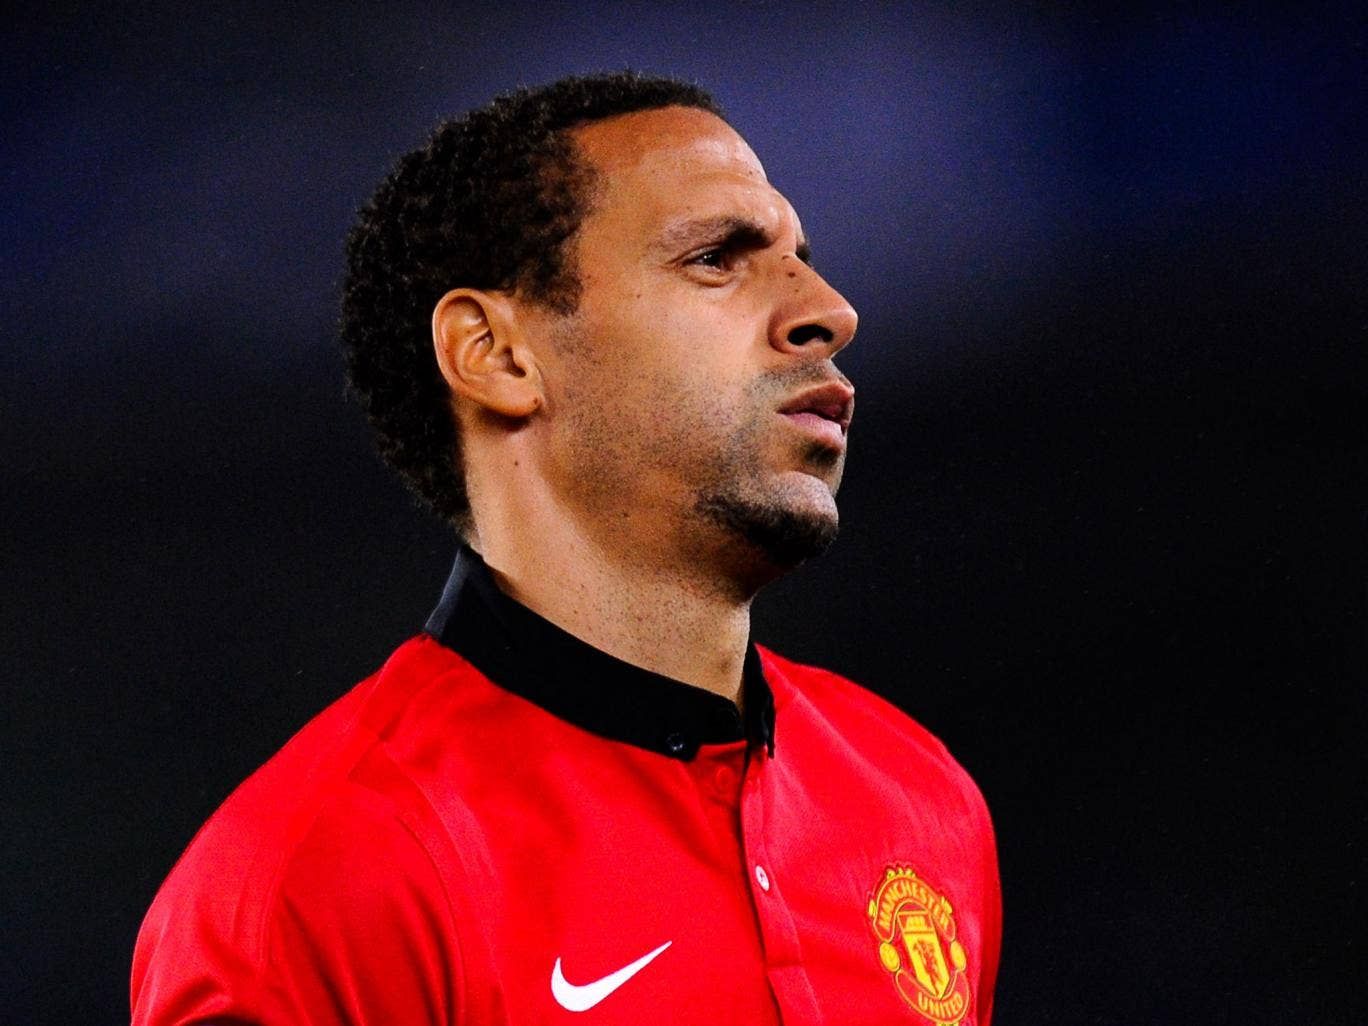 Manchester United defender Rio Ferdinand has claimed that the current Premier League table will count for nothing when May comes around